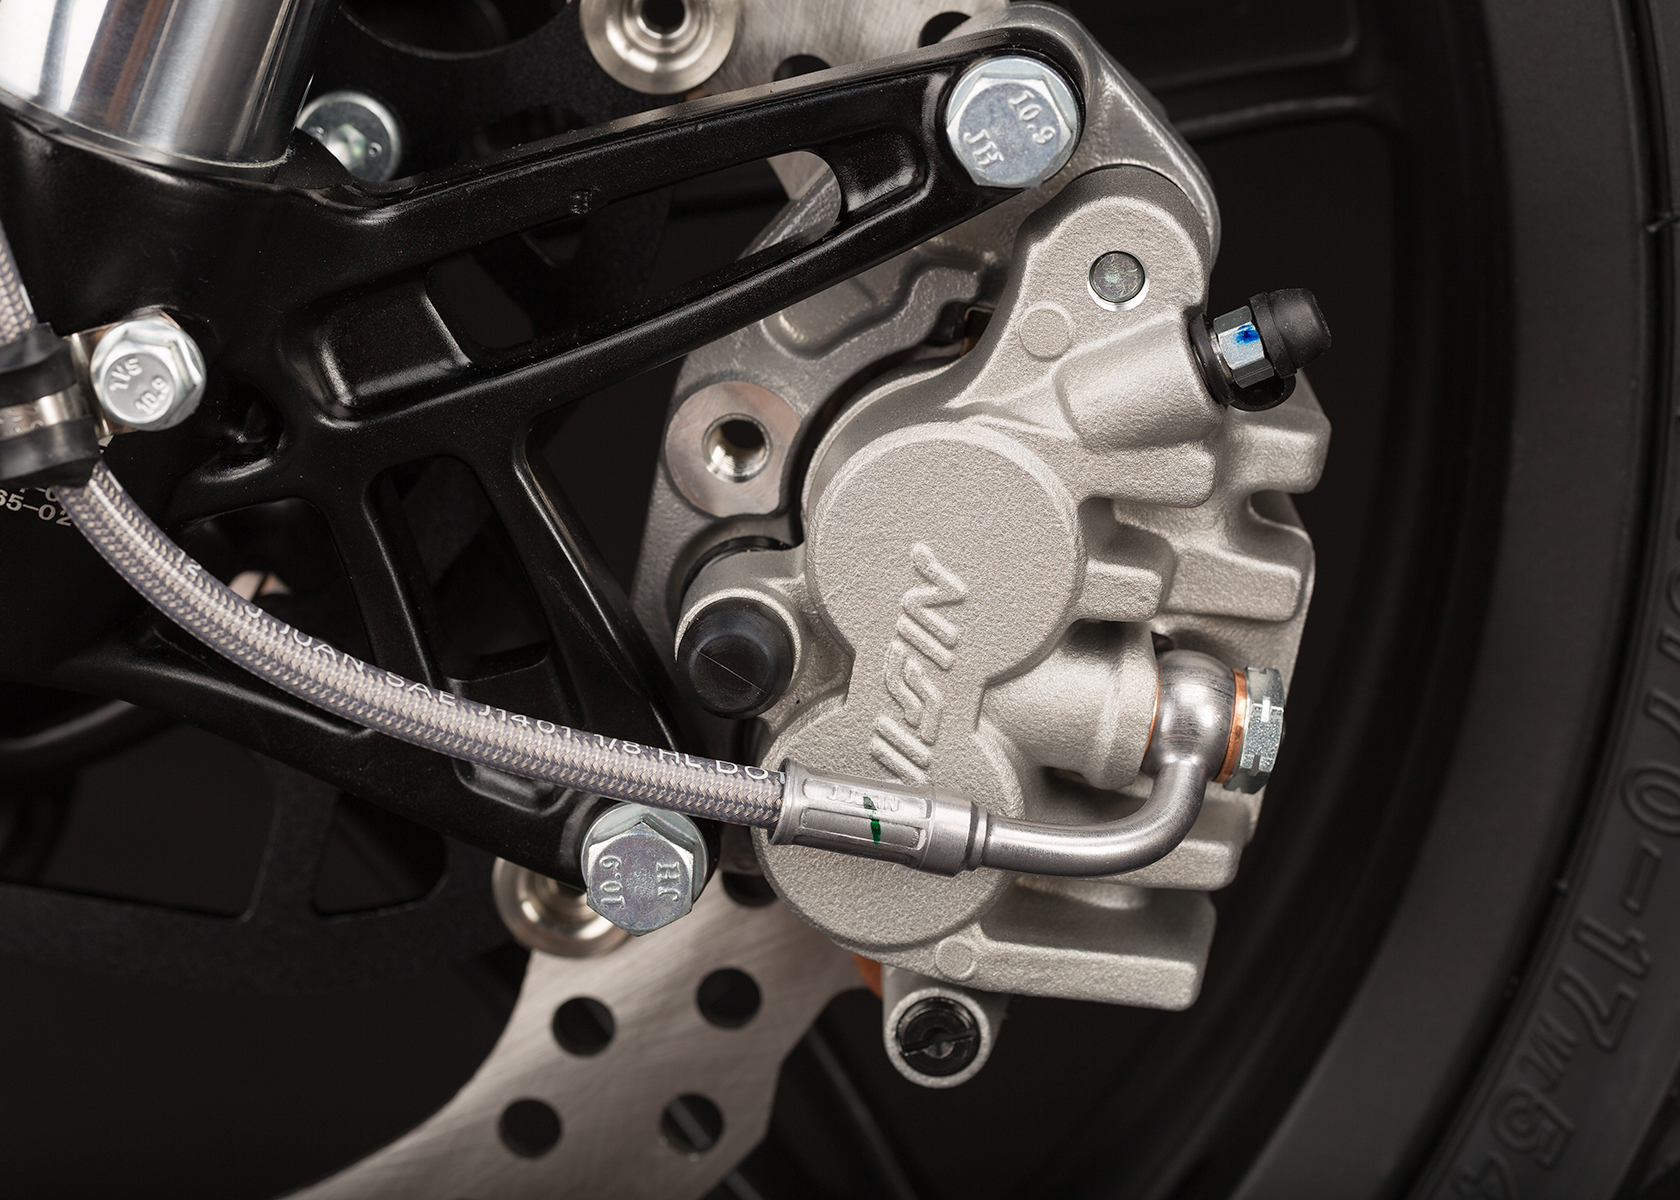 2014 Zero SR Electric Motorcycle: Front Brake